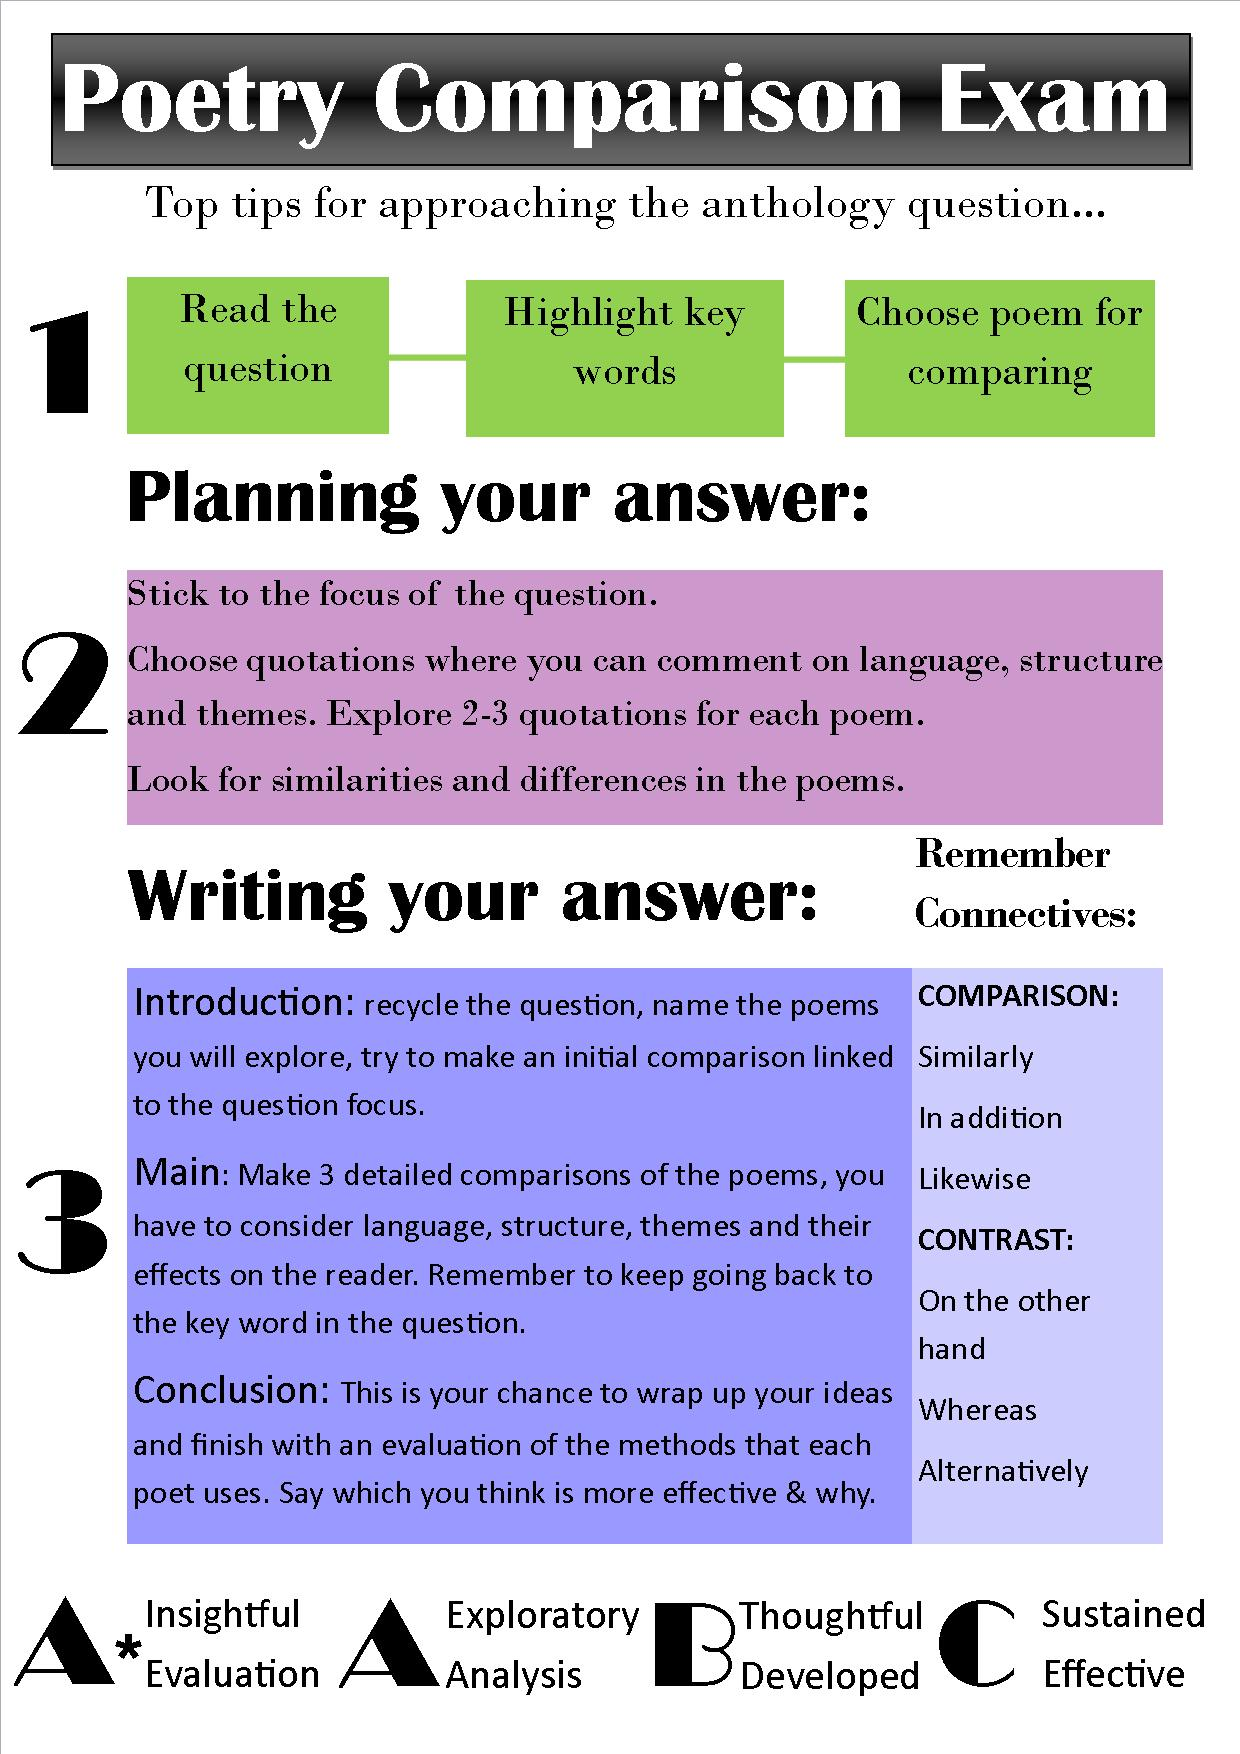 english literature essay planning English literature assessment resources hide assessment resources planning resources teaching resources assessment resources contact details give us your.